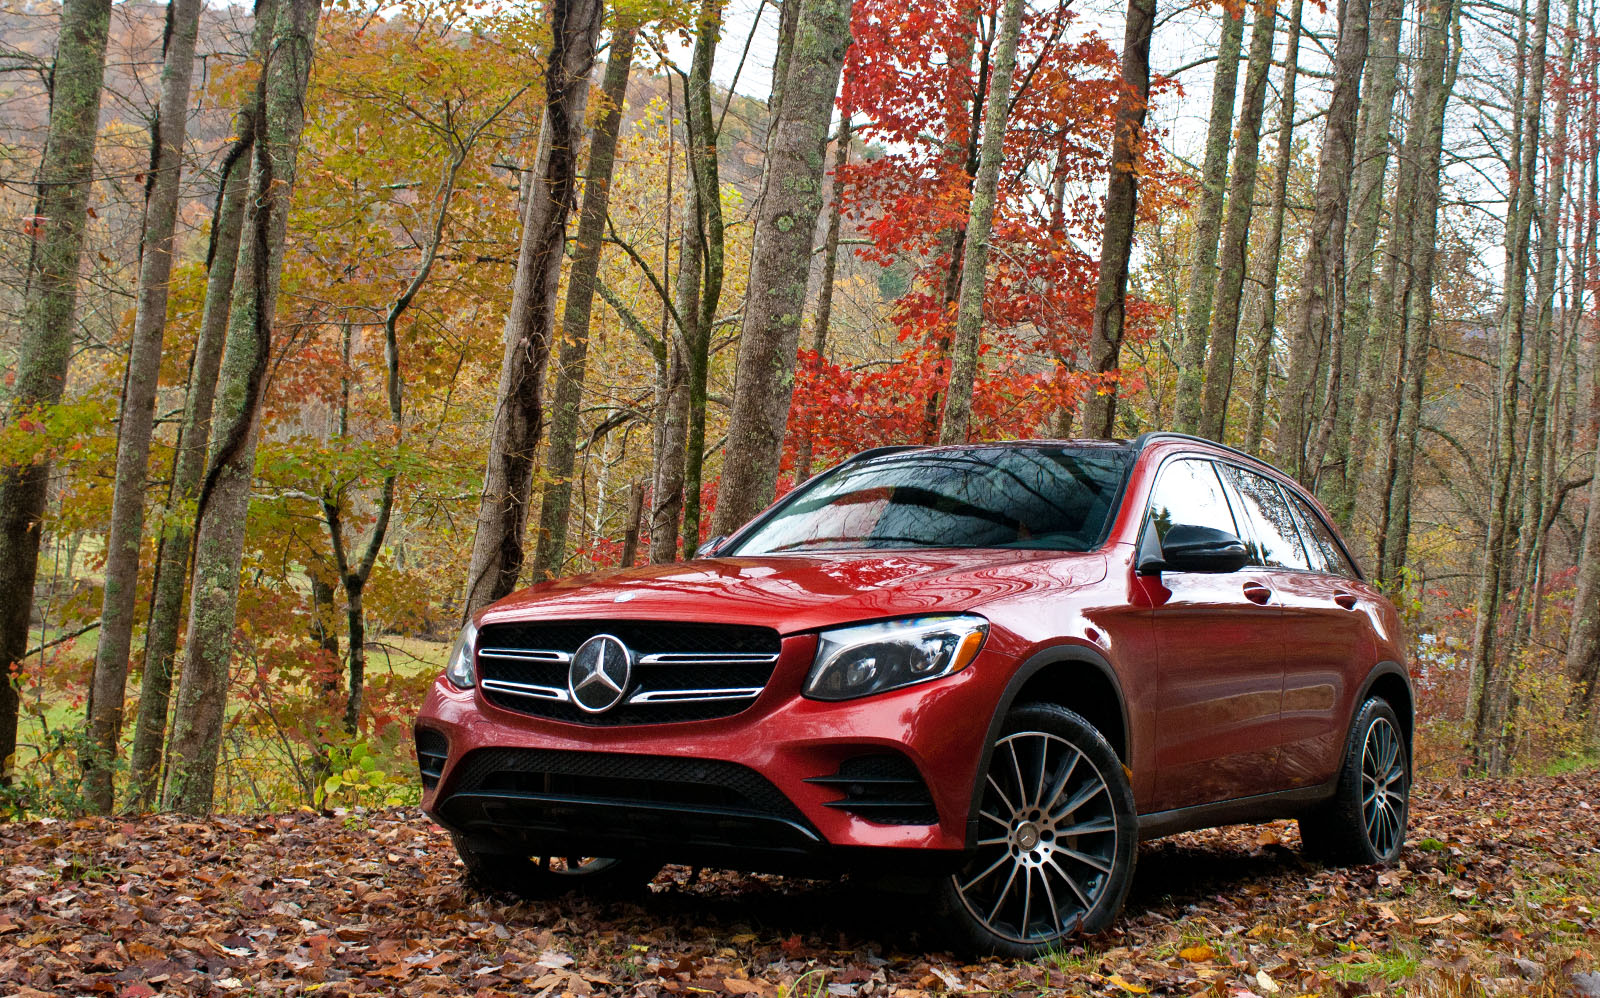 http://www.autoguide.com/blog/wp-content/gallery/2016-mercedes-benz-glc-300-4matic/2016-Mercedes-Benz-GLC-300-8.jpg